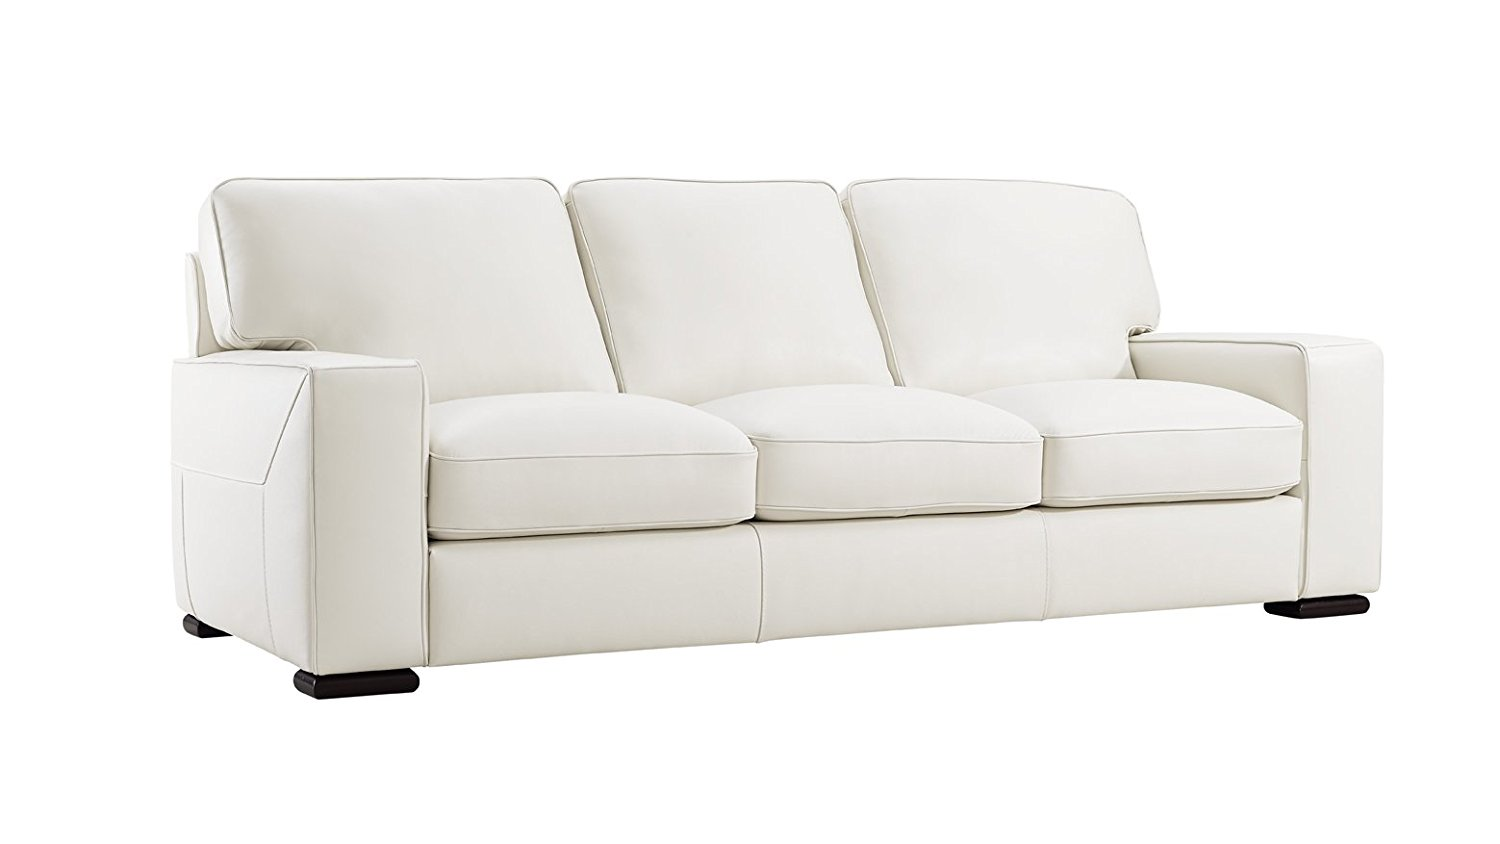 Matera Cream Leather Stationary Sofa